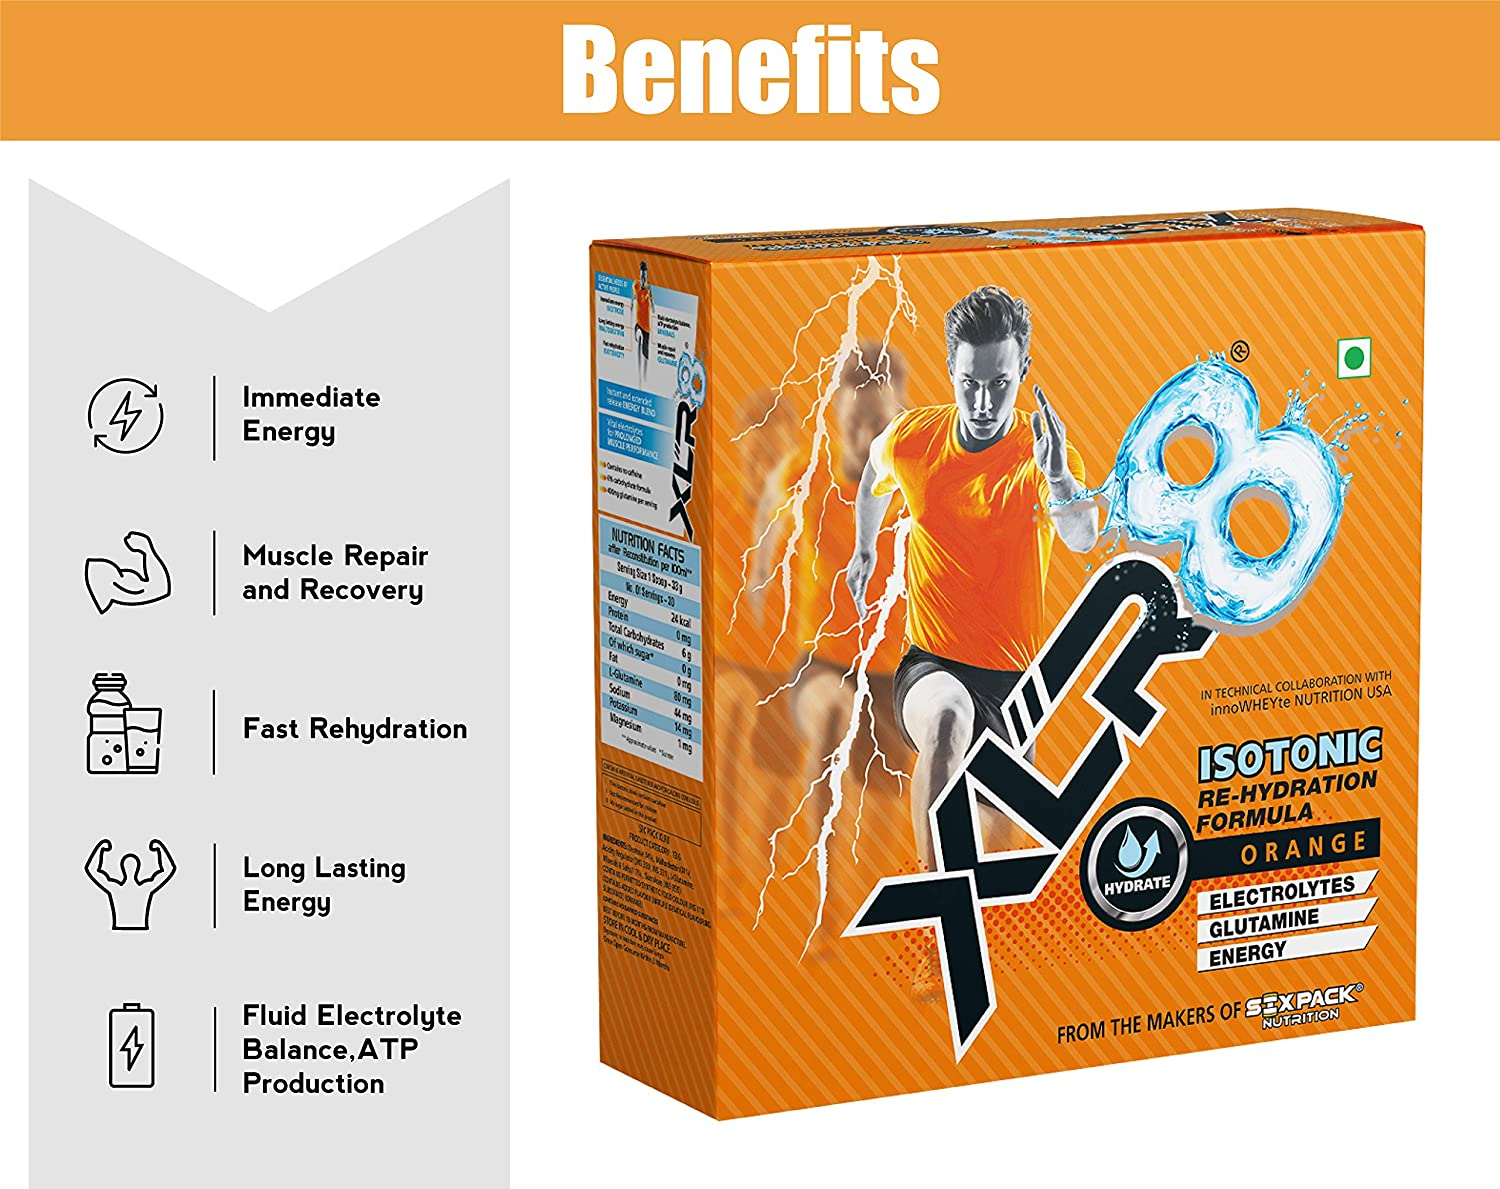 XLR8 Isotonic Re-Hydration Instant Formula Extended Workout Electrolyte  Energy Drink - 1 Kg (Orange Flavour)